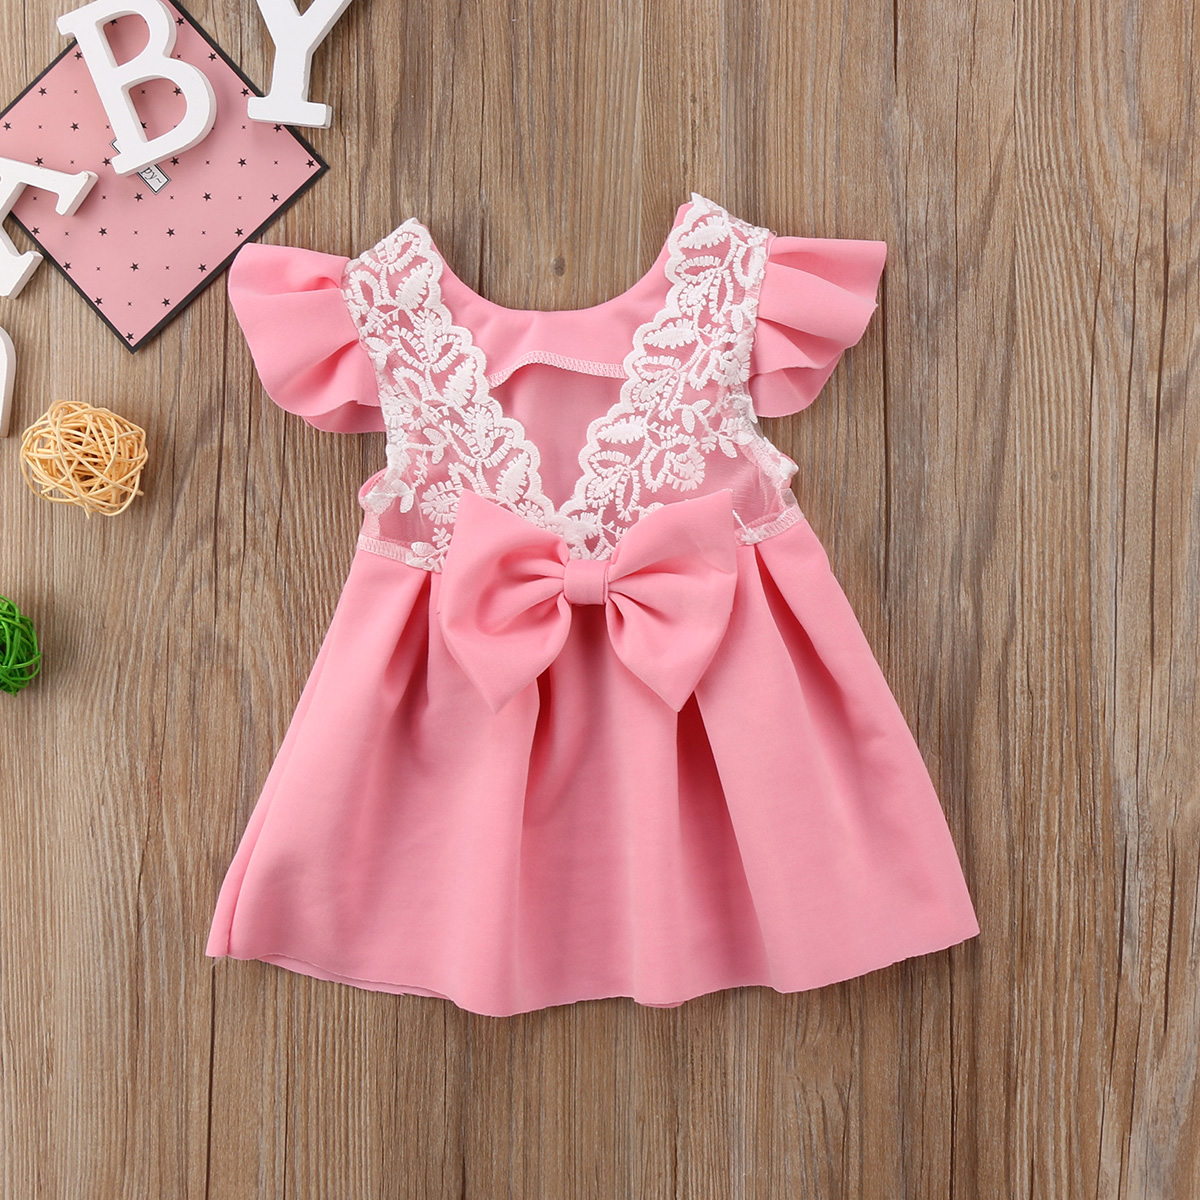 Pudcoco Baby Girls Dress Toddler Girls Backless Lace Bow Princess Dresses Tutu Party Wed ...